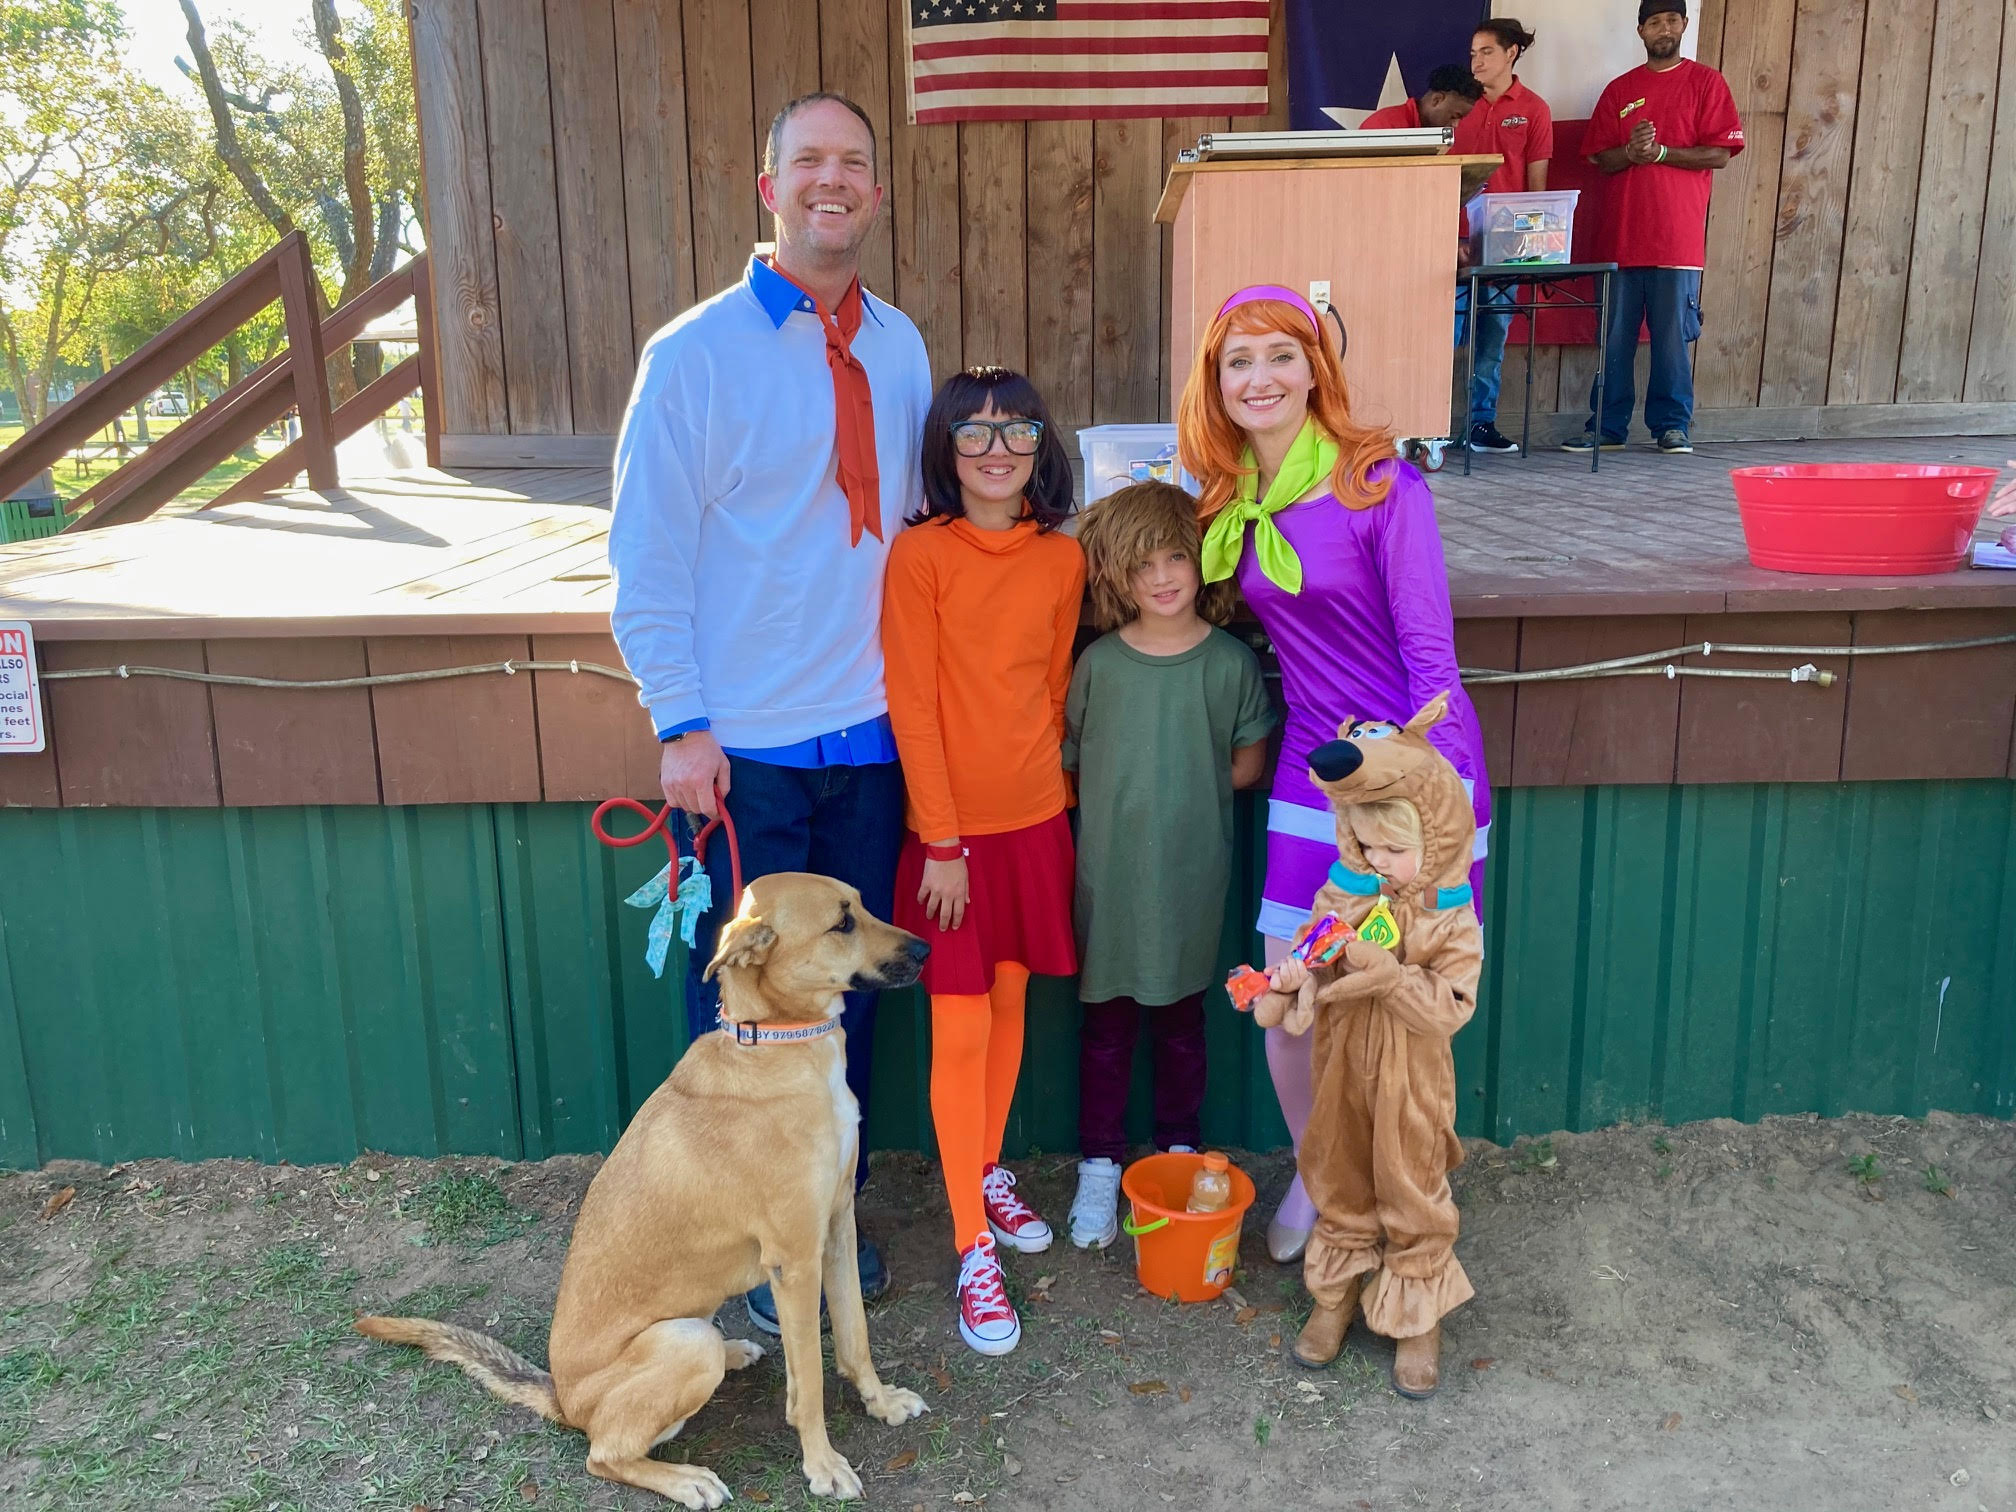 Family dressed up for halloween costume contest